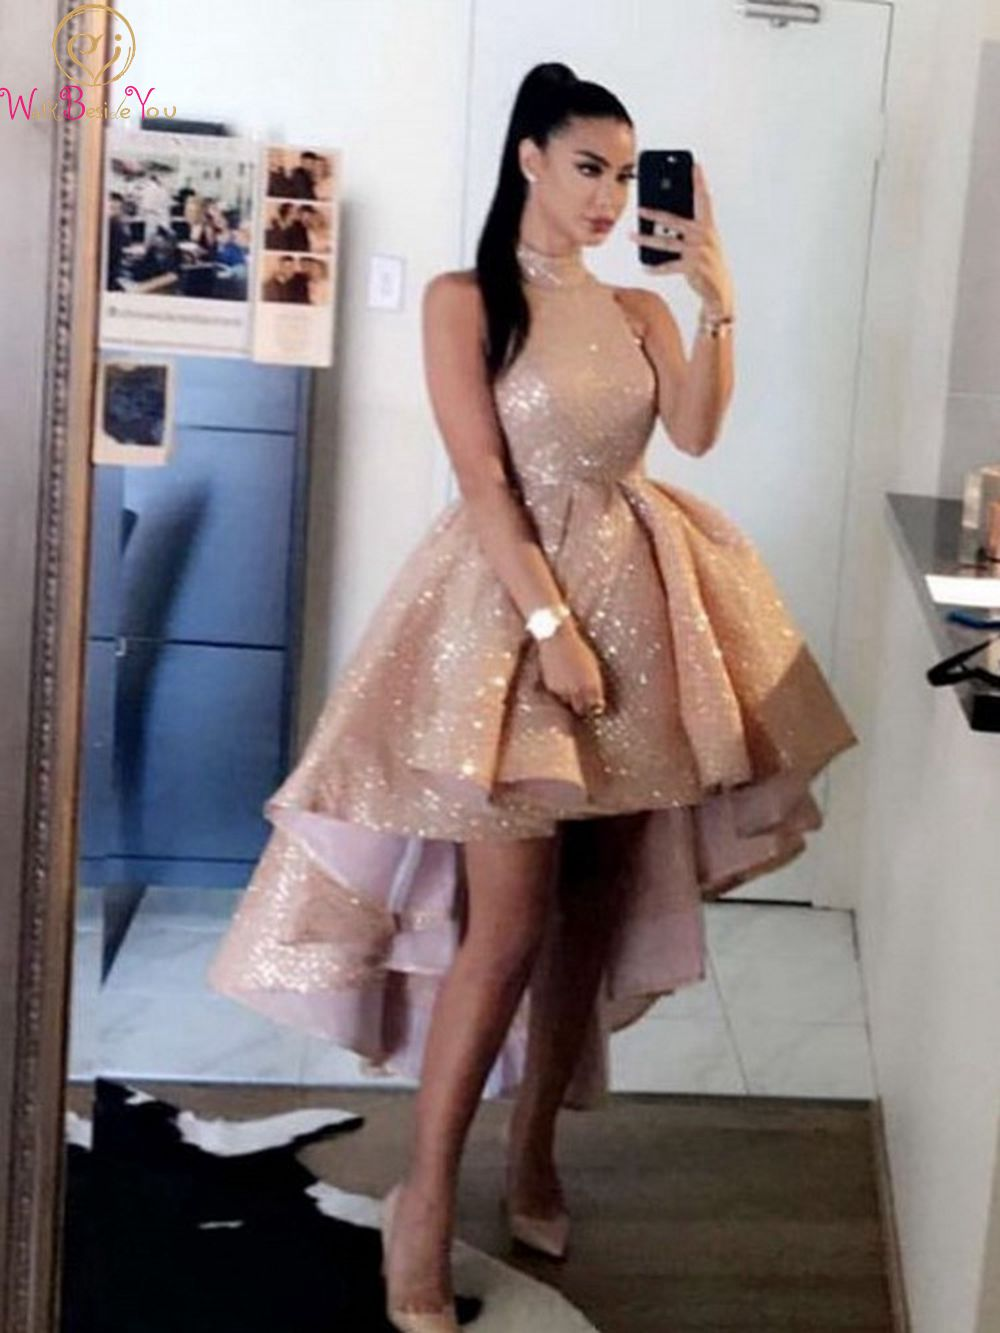 Elegant Rose Gold High Neck <font><b>Prom</b></font> <font><b>Dresses</b></font> 2019 <font><b>Sexy</b></font> Short Front Long Back Sleeveless Formal Party Evening Gowns vestido de gala image